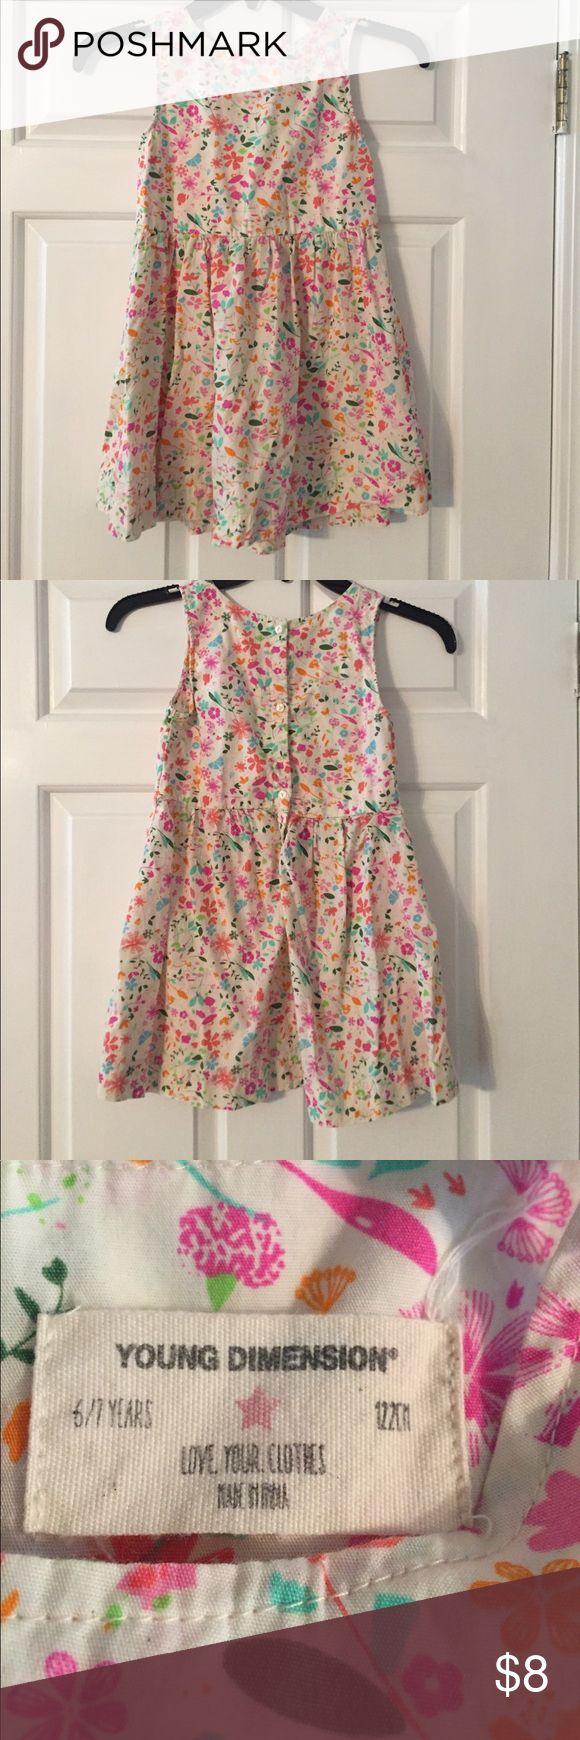 Young dimensions dress Pretty floral dress.  Barely worn.  No rips or stains and smoke free home.  Size 4-6 years old. This stores sizes run on smaller sizing so petite 6 year old or a regular size 4/5.  From primark dept store check website for sizing. young dimensions Dresses Casual